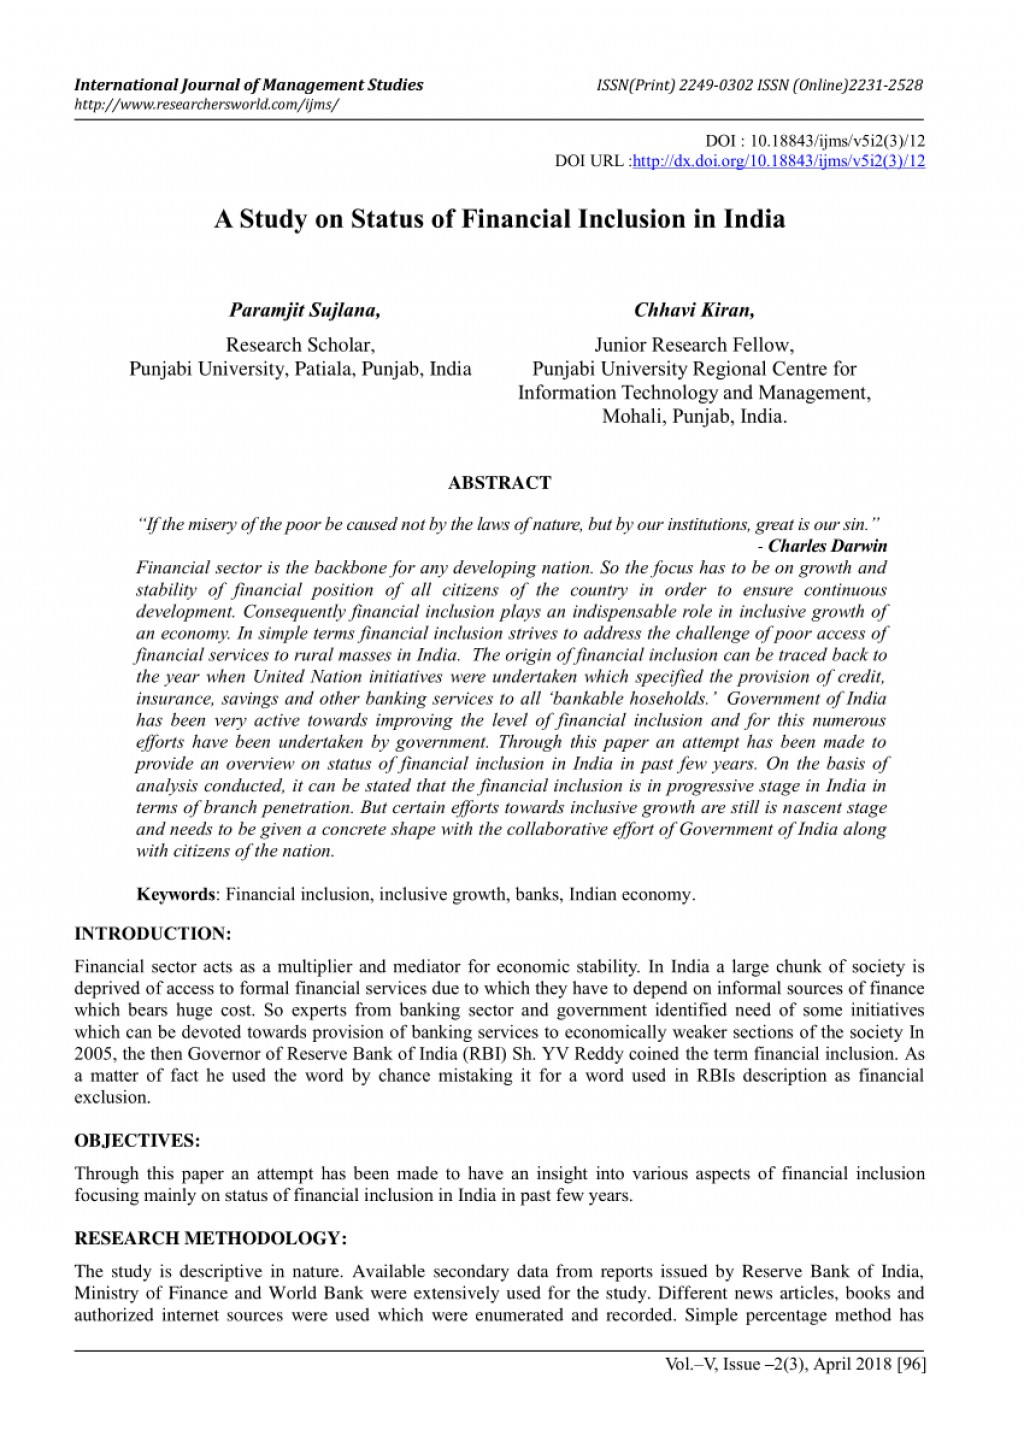 002 Abstract Of Research Paper In Finance Awful Large